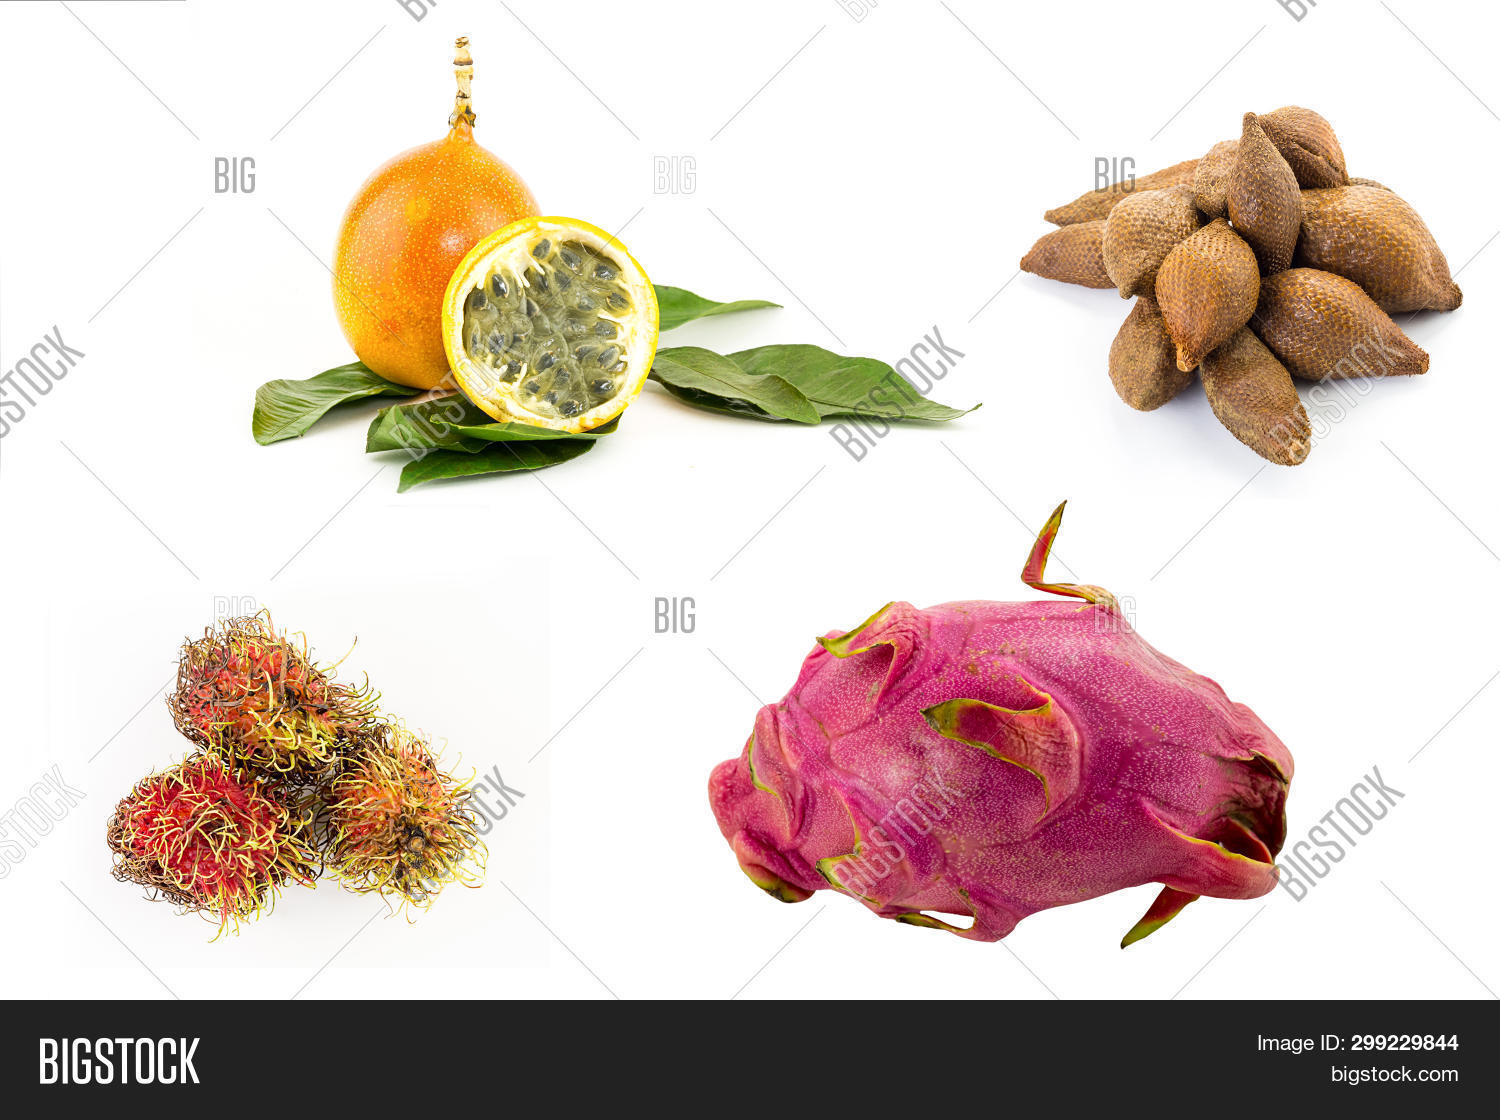 exotic fruits of Asia. Juicy passion fruit yellow ribbutan fruit cactus dragon fruit scaly draconia fruit herring on white background